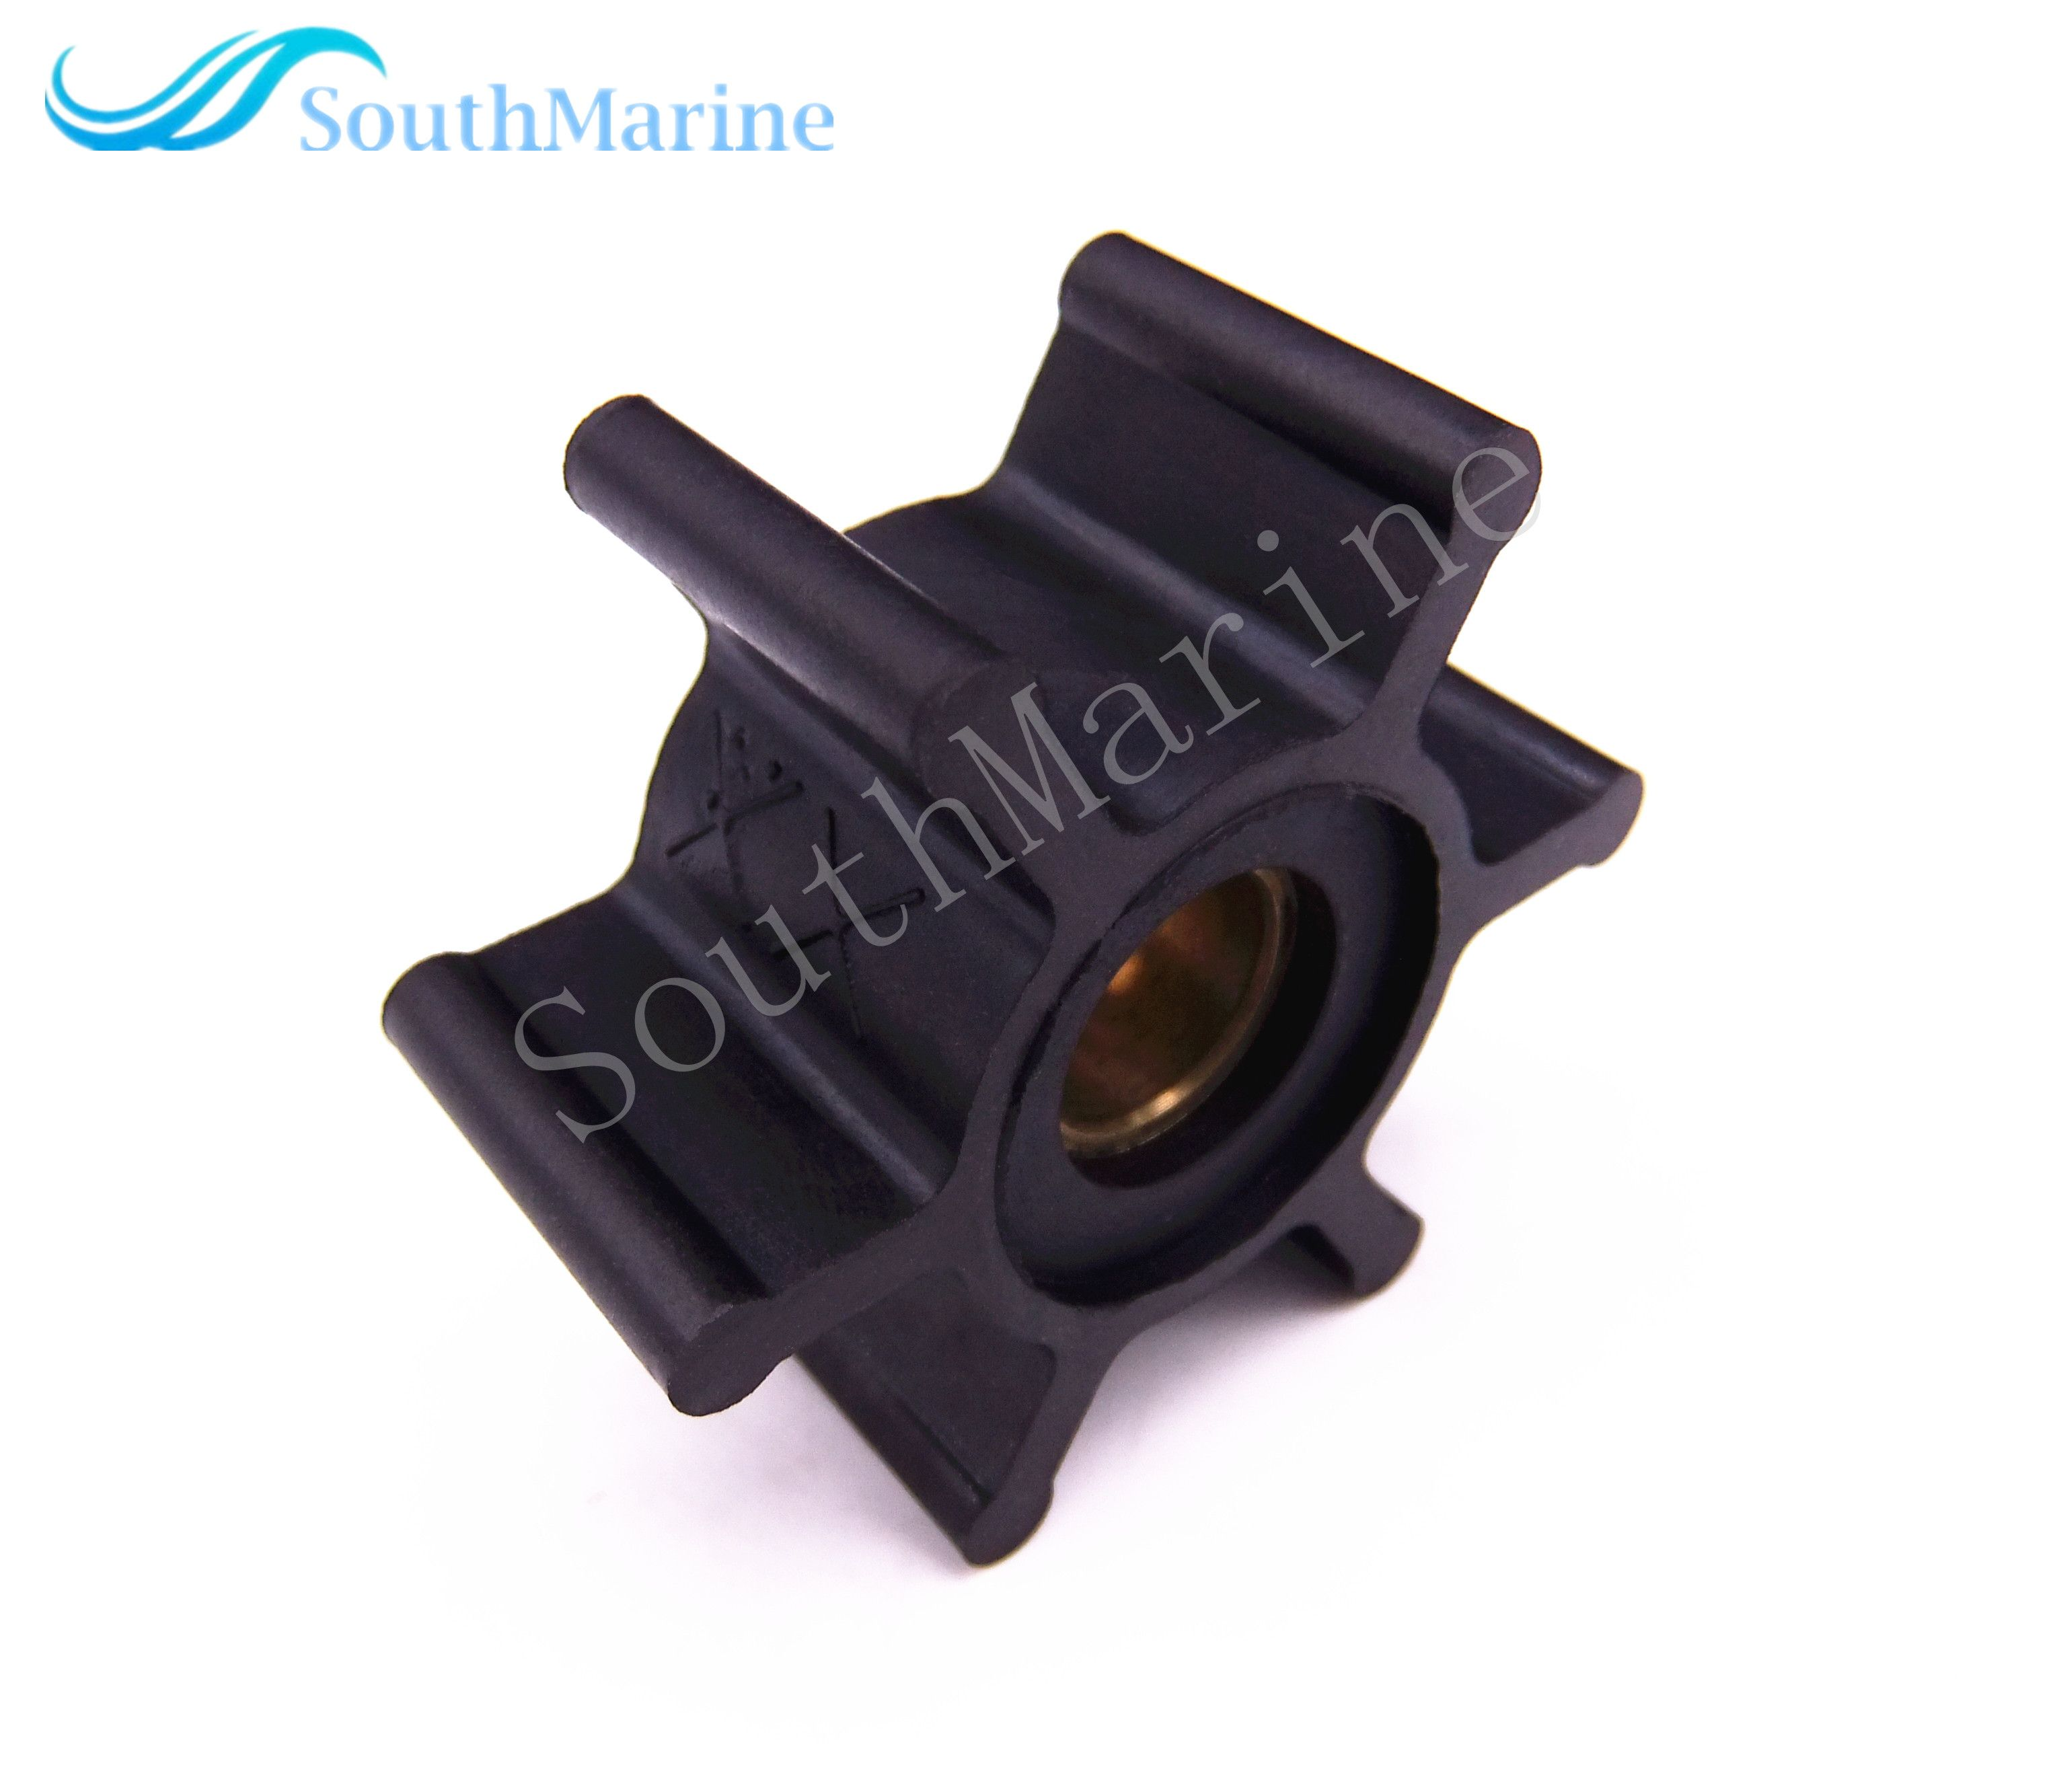 Water Pump Impeller 09-810B 18653-0001 128990-42200 for Jabsco //Johnson YANMAR